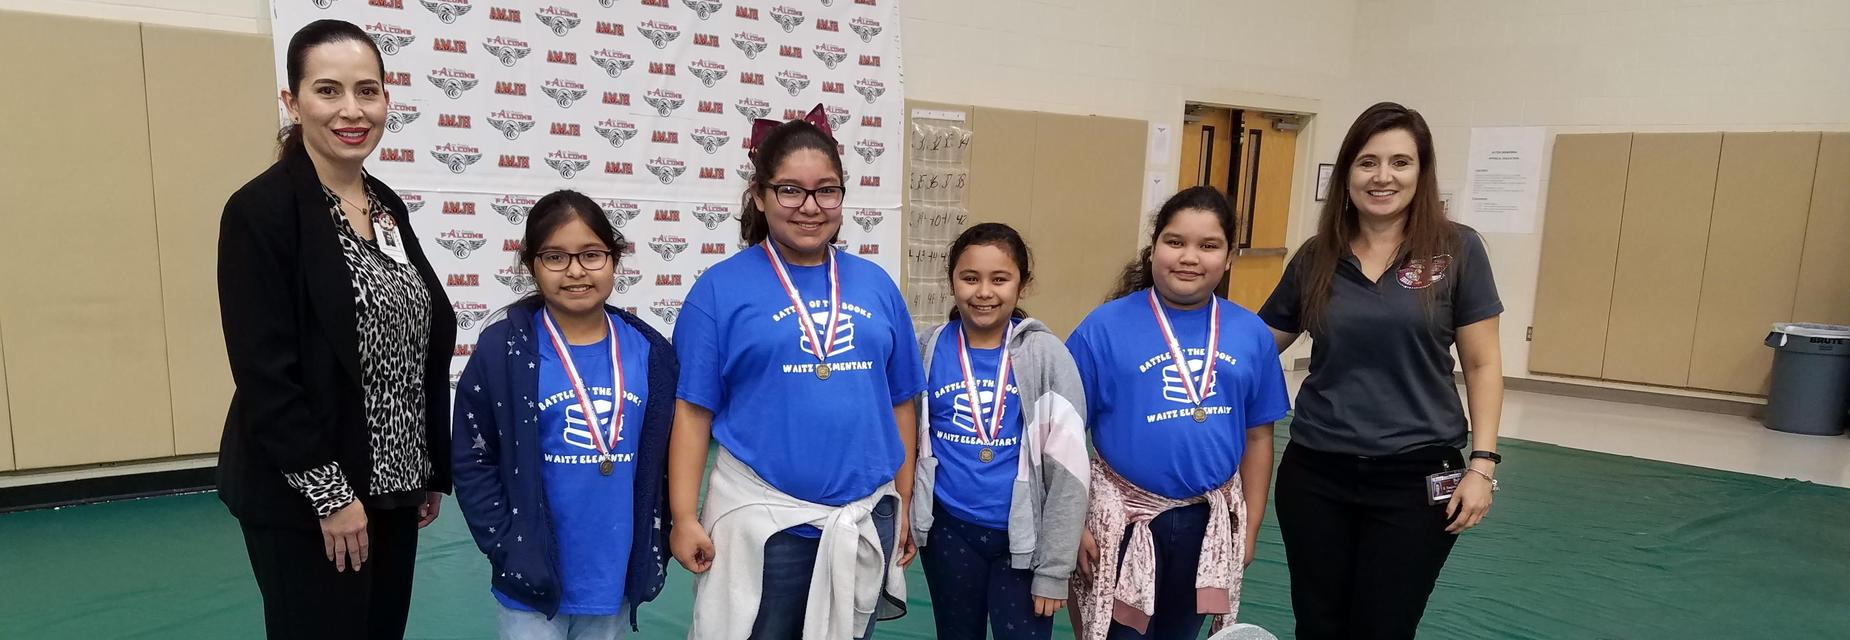 Bluebonnet team